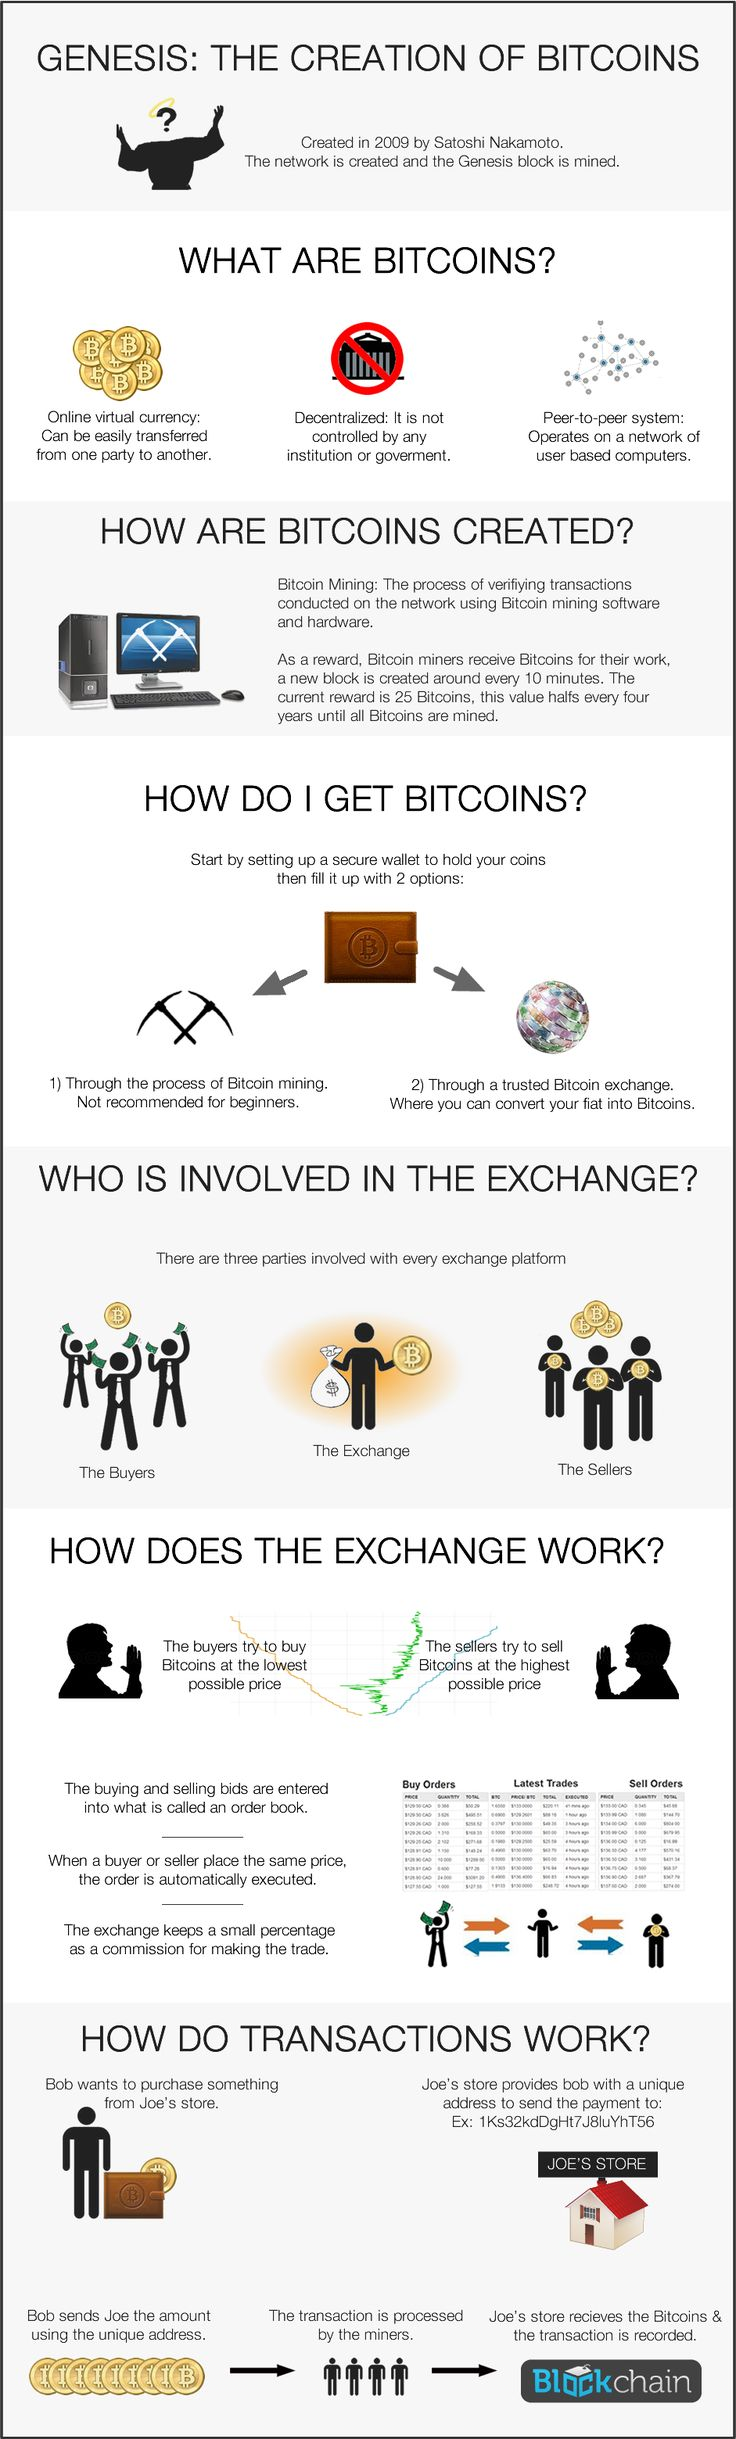 The Creation of Bitcoins - Q&A and #Infographic for #Bitcoin